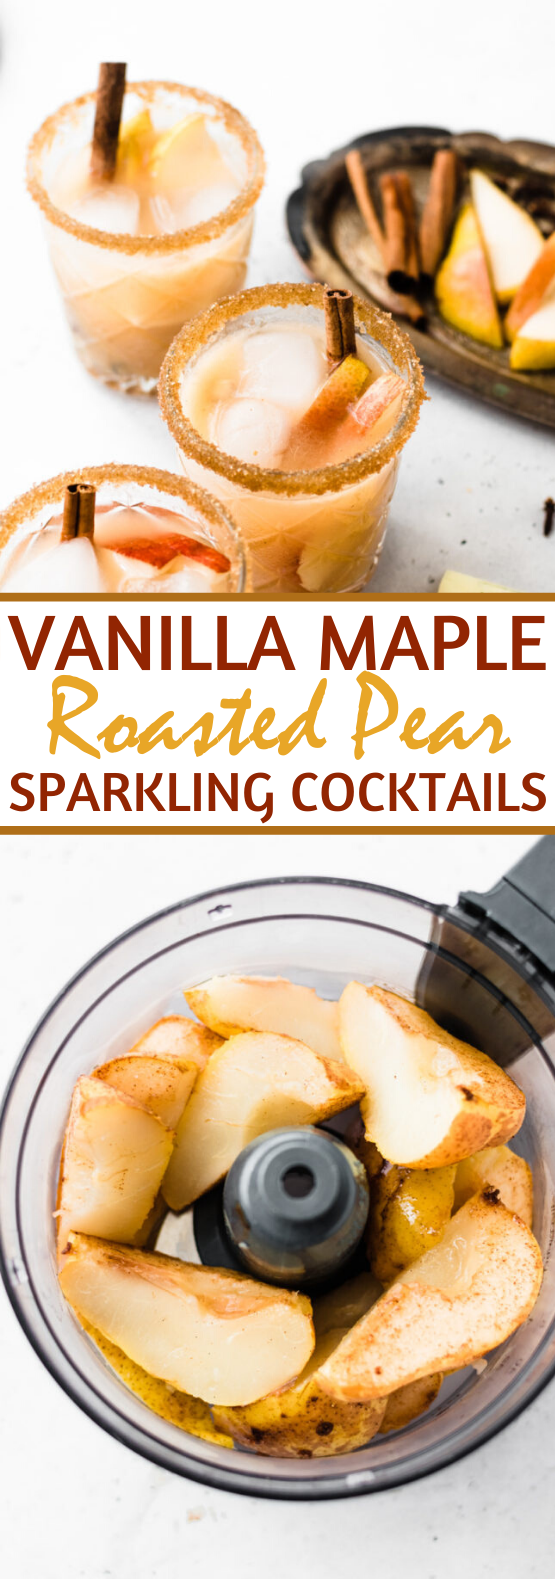 Vanilla Maple Roasted Pear Sparkling Cocktails #drinks #cocktails #alcohol #fall #beverages